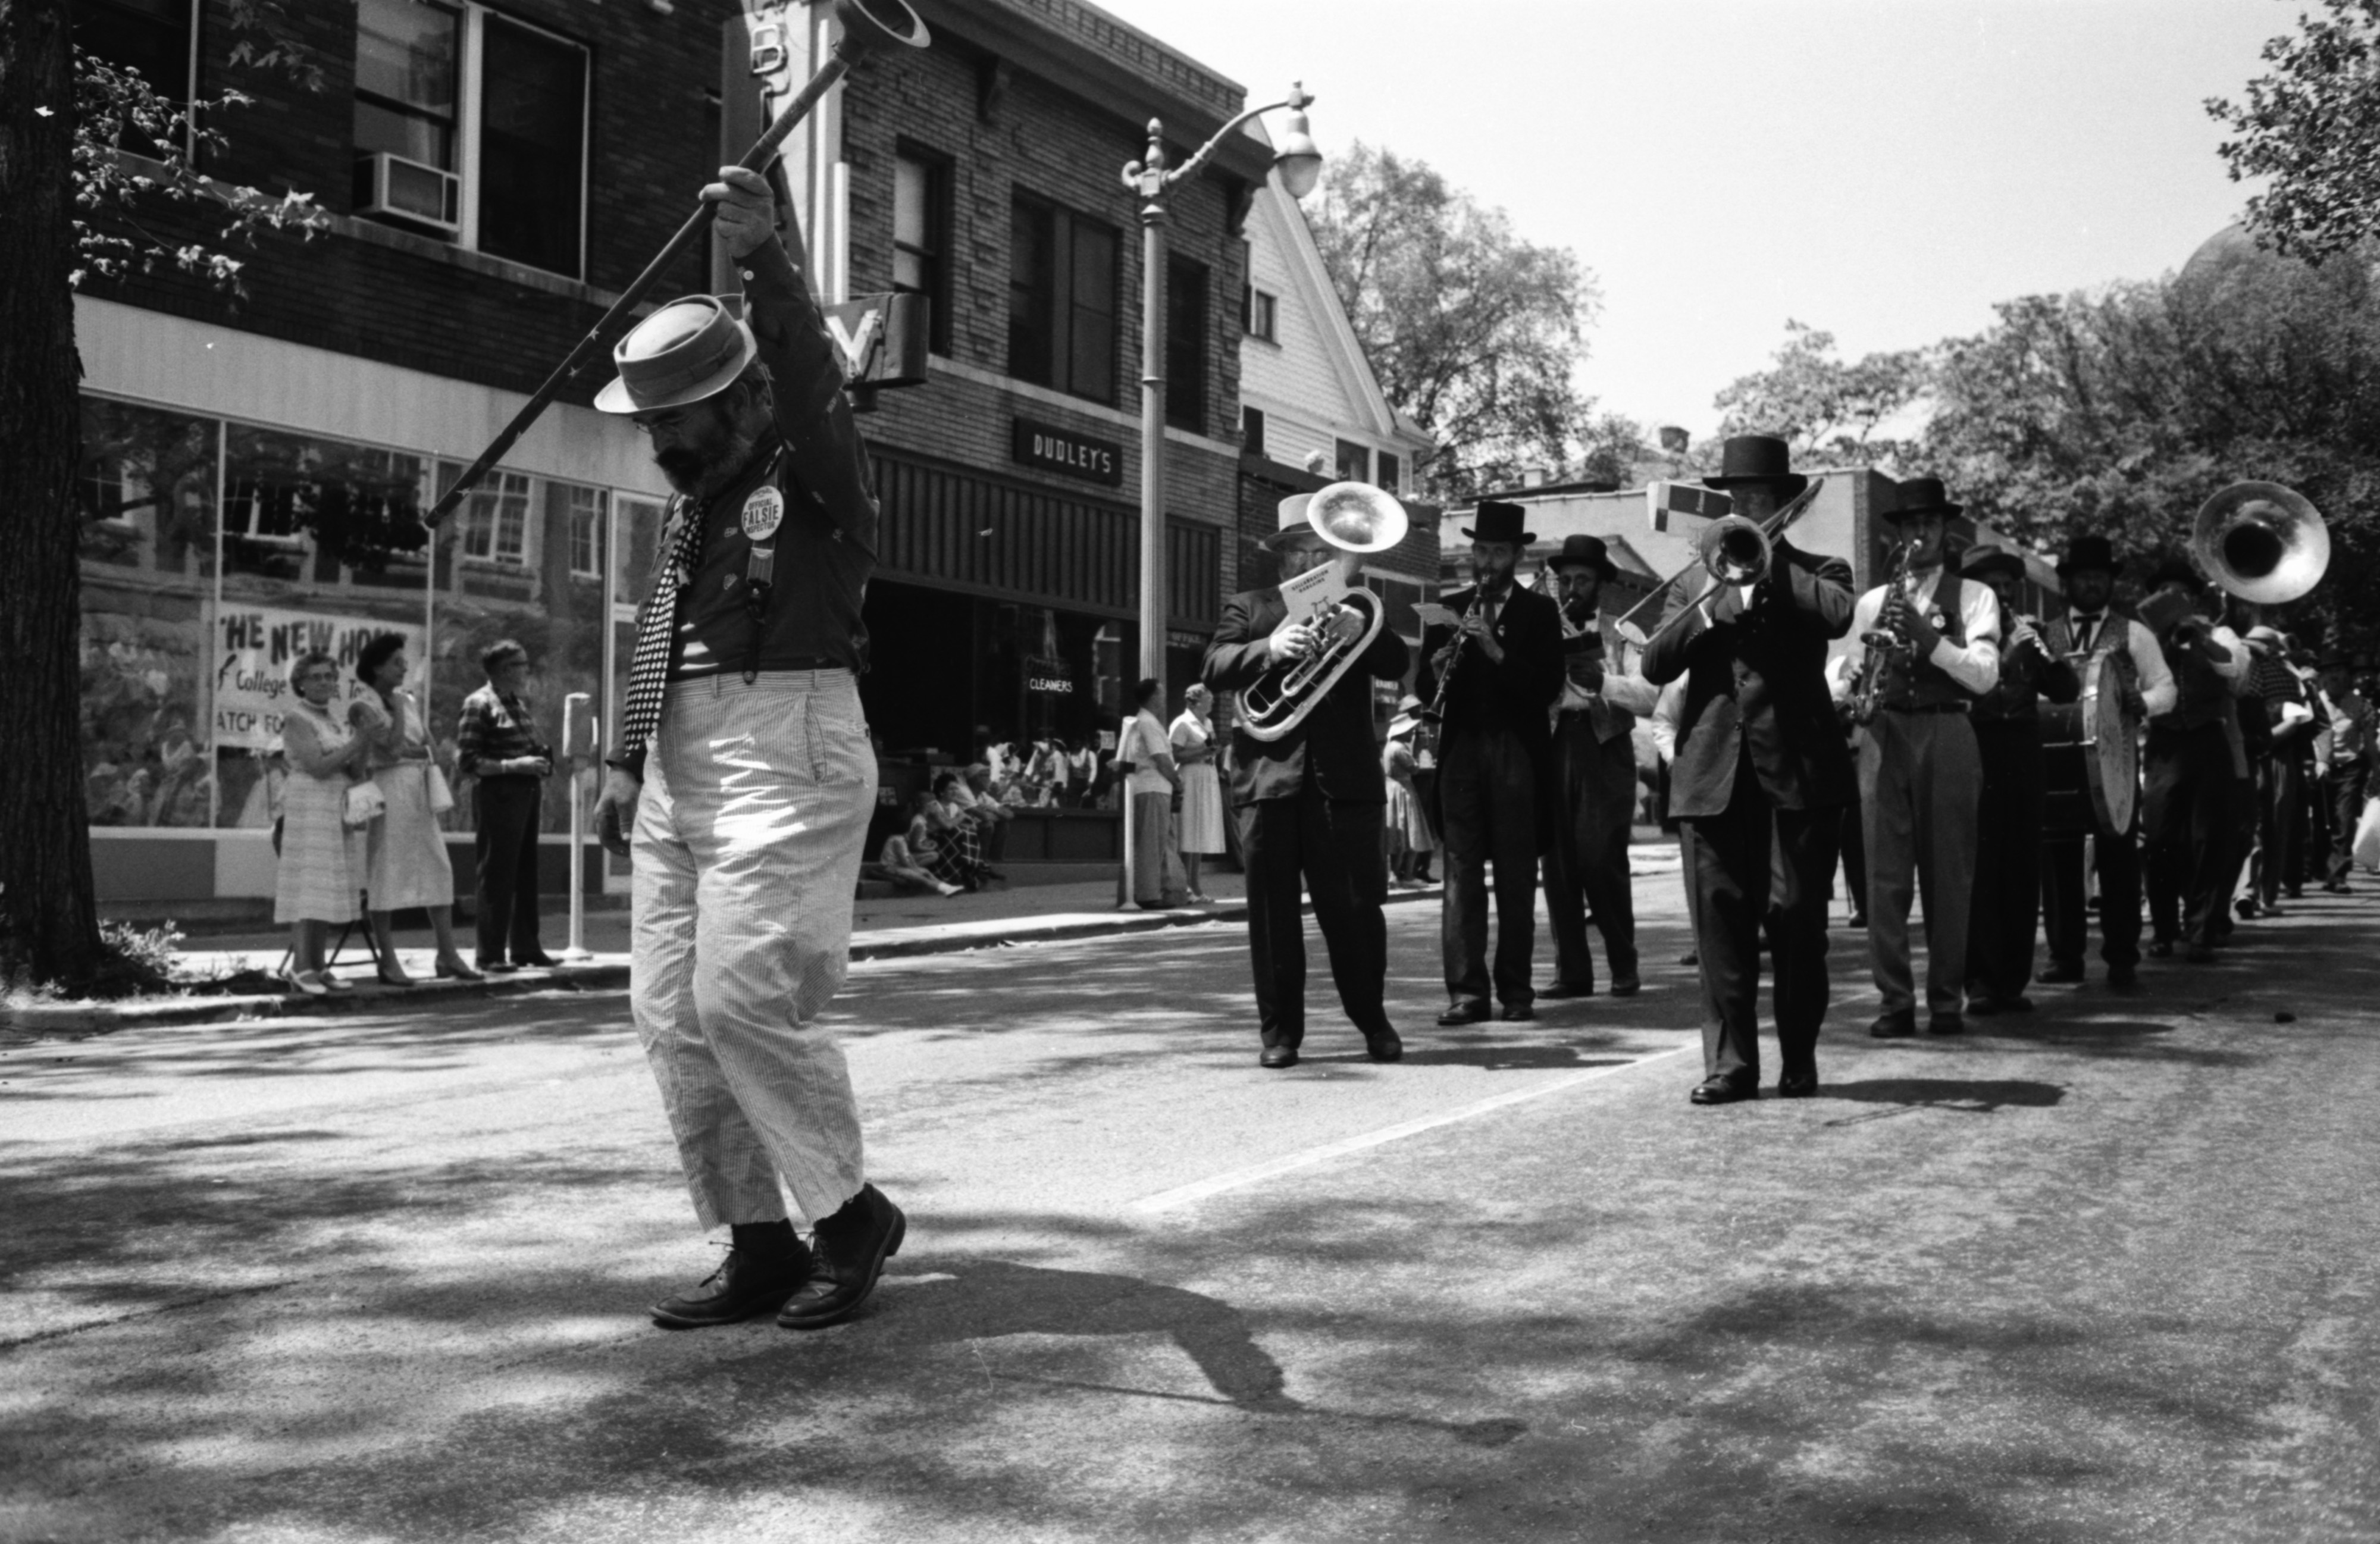 Marching Band In The Ypsilanti Fourth Of July Parade, July 1959 image